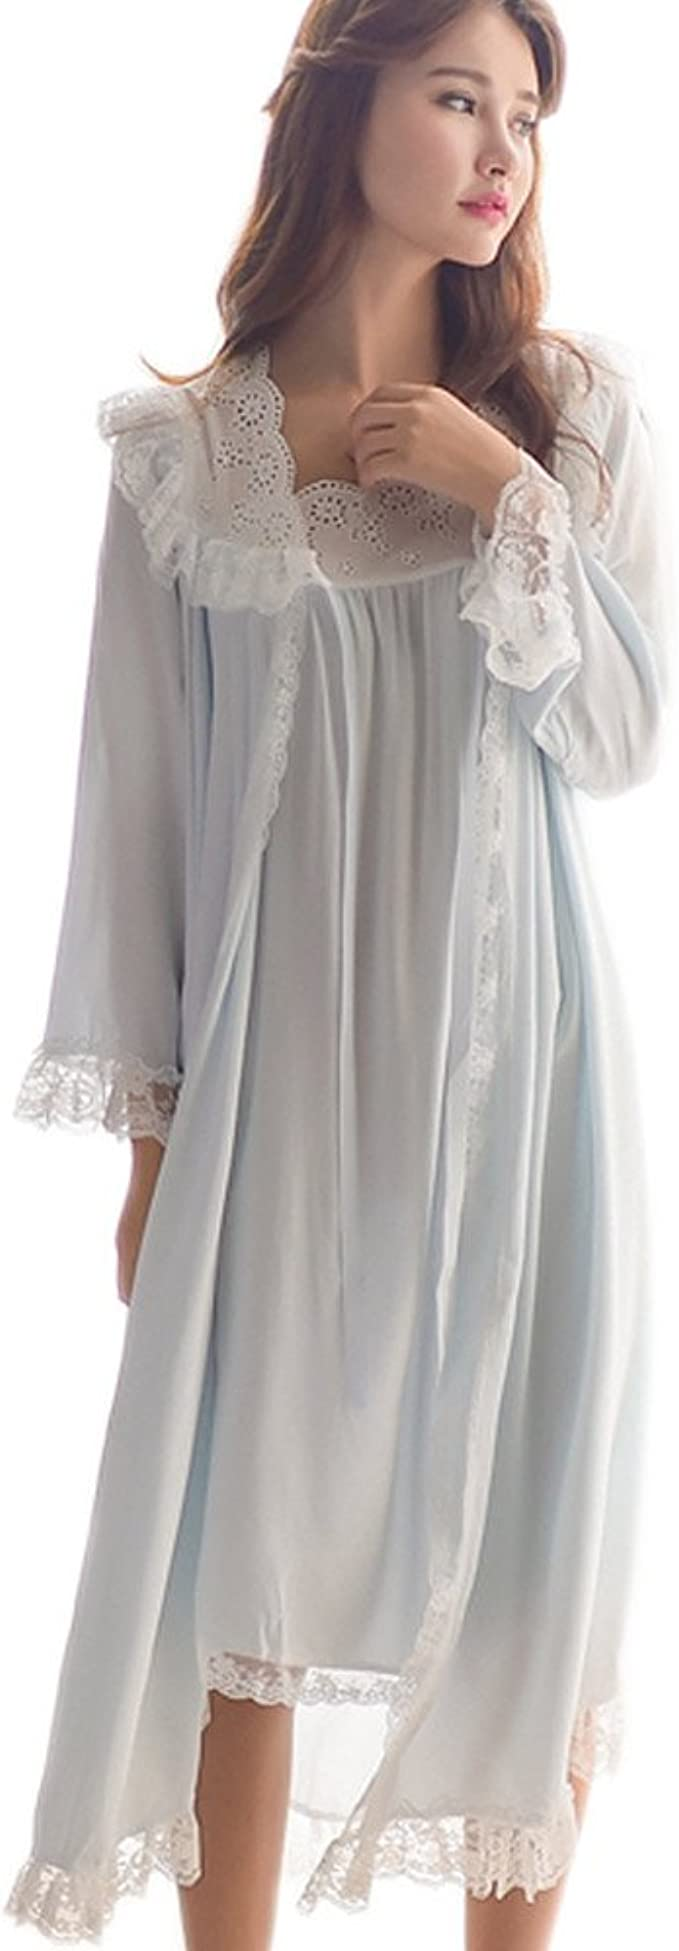 1920s Style Underwear, Lingerie, Nightgowns, Pajamas Womens Victorian Nightgown Vintage 2 pcs Sleepwear Nightdress Robes Royal Pajamas Lounge Wear $34.99 AT vintagedancer.com